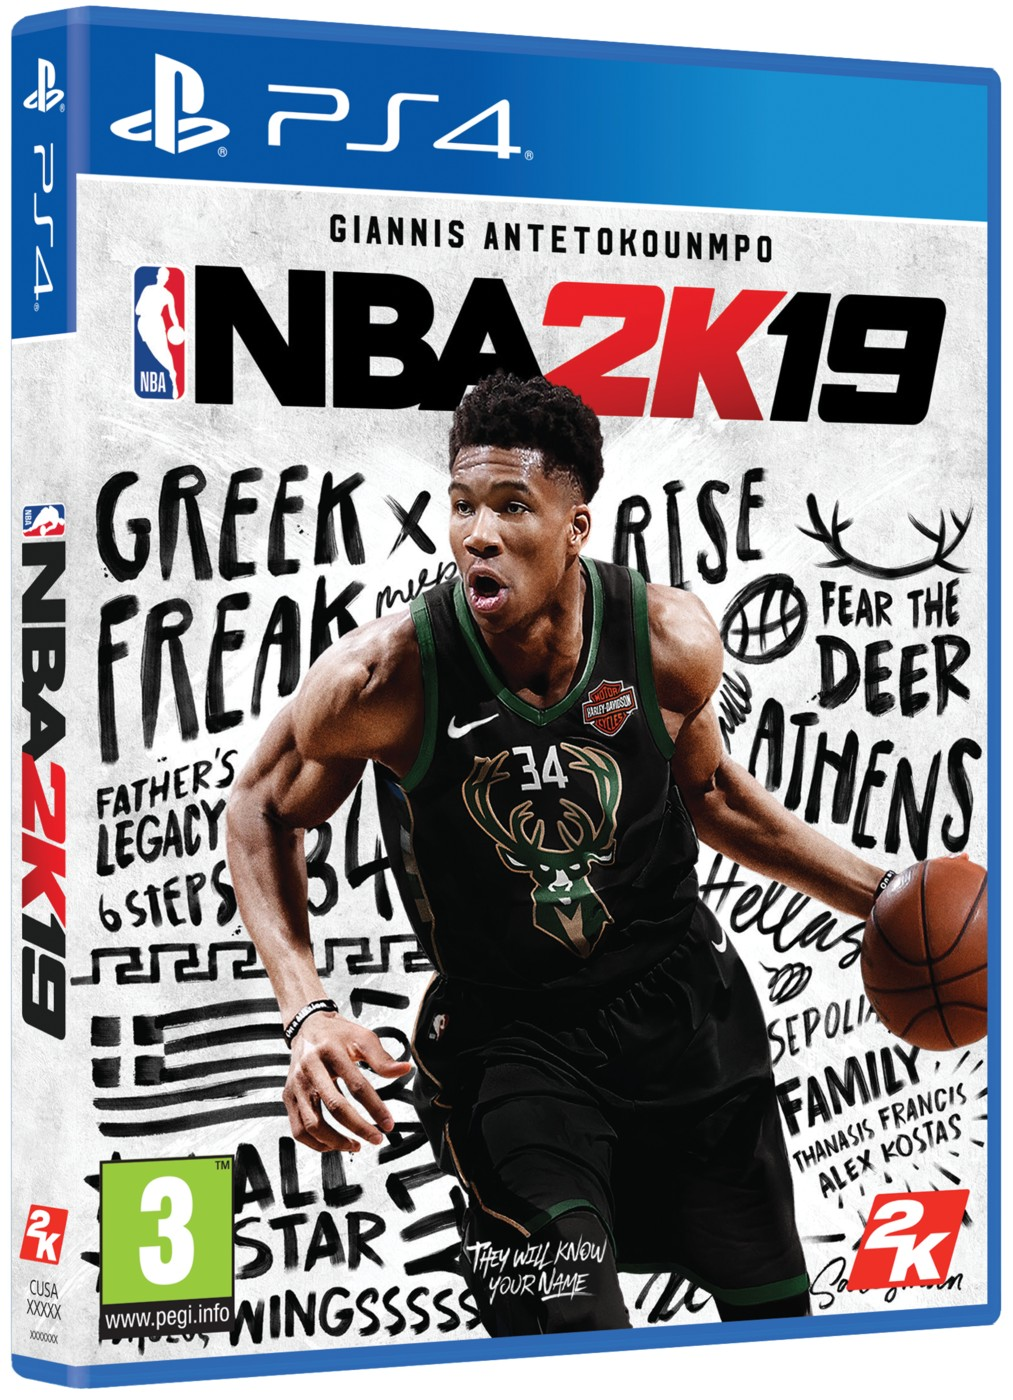 NBA 2K19 (Steelbook Edition) - PS4